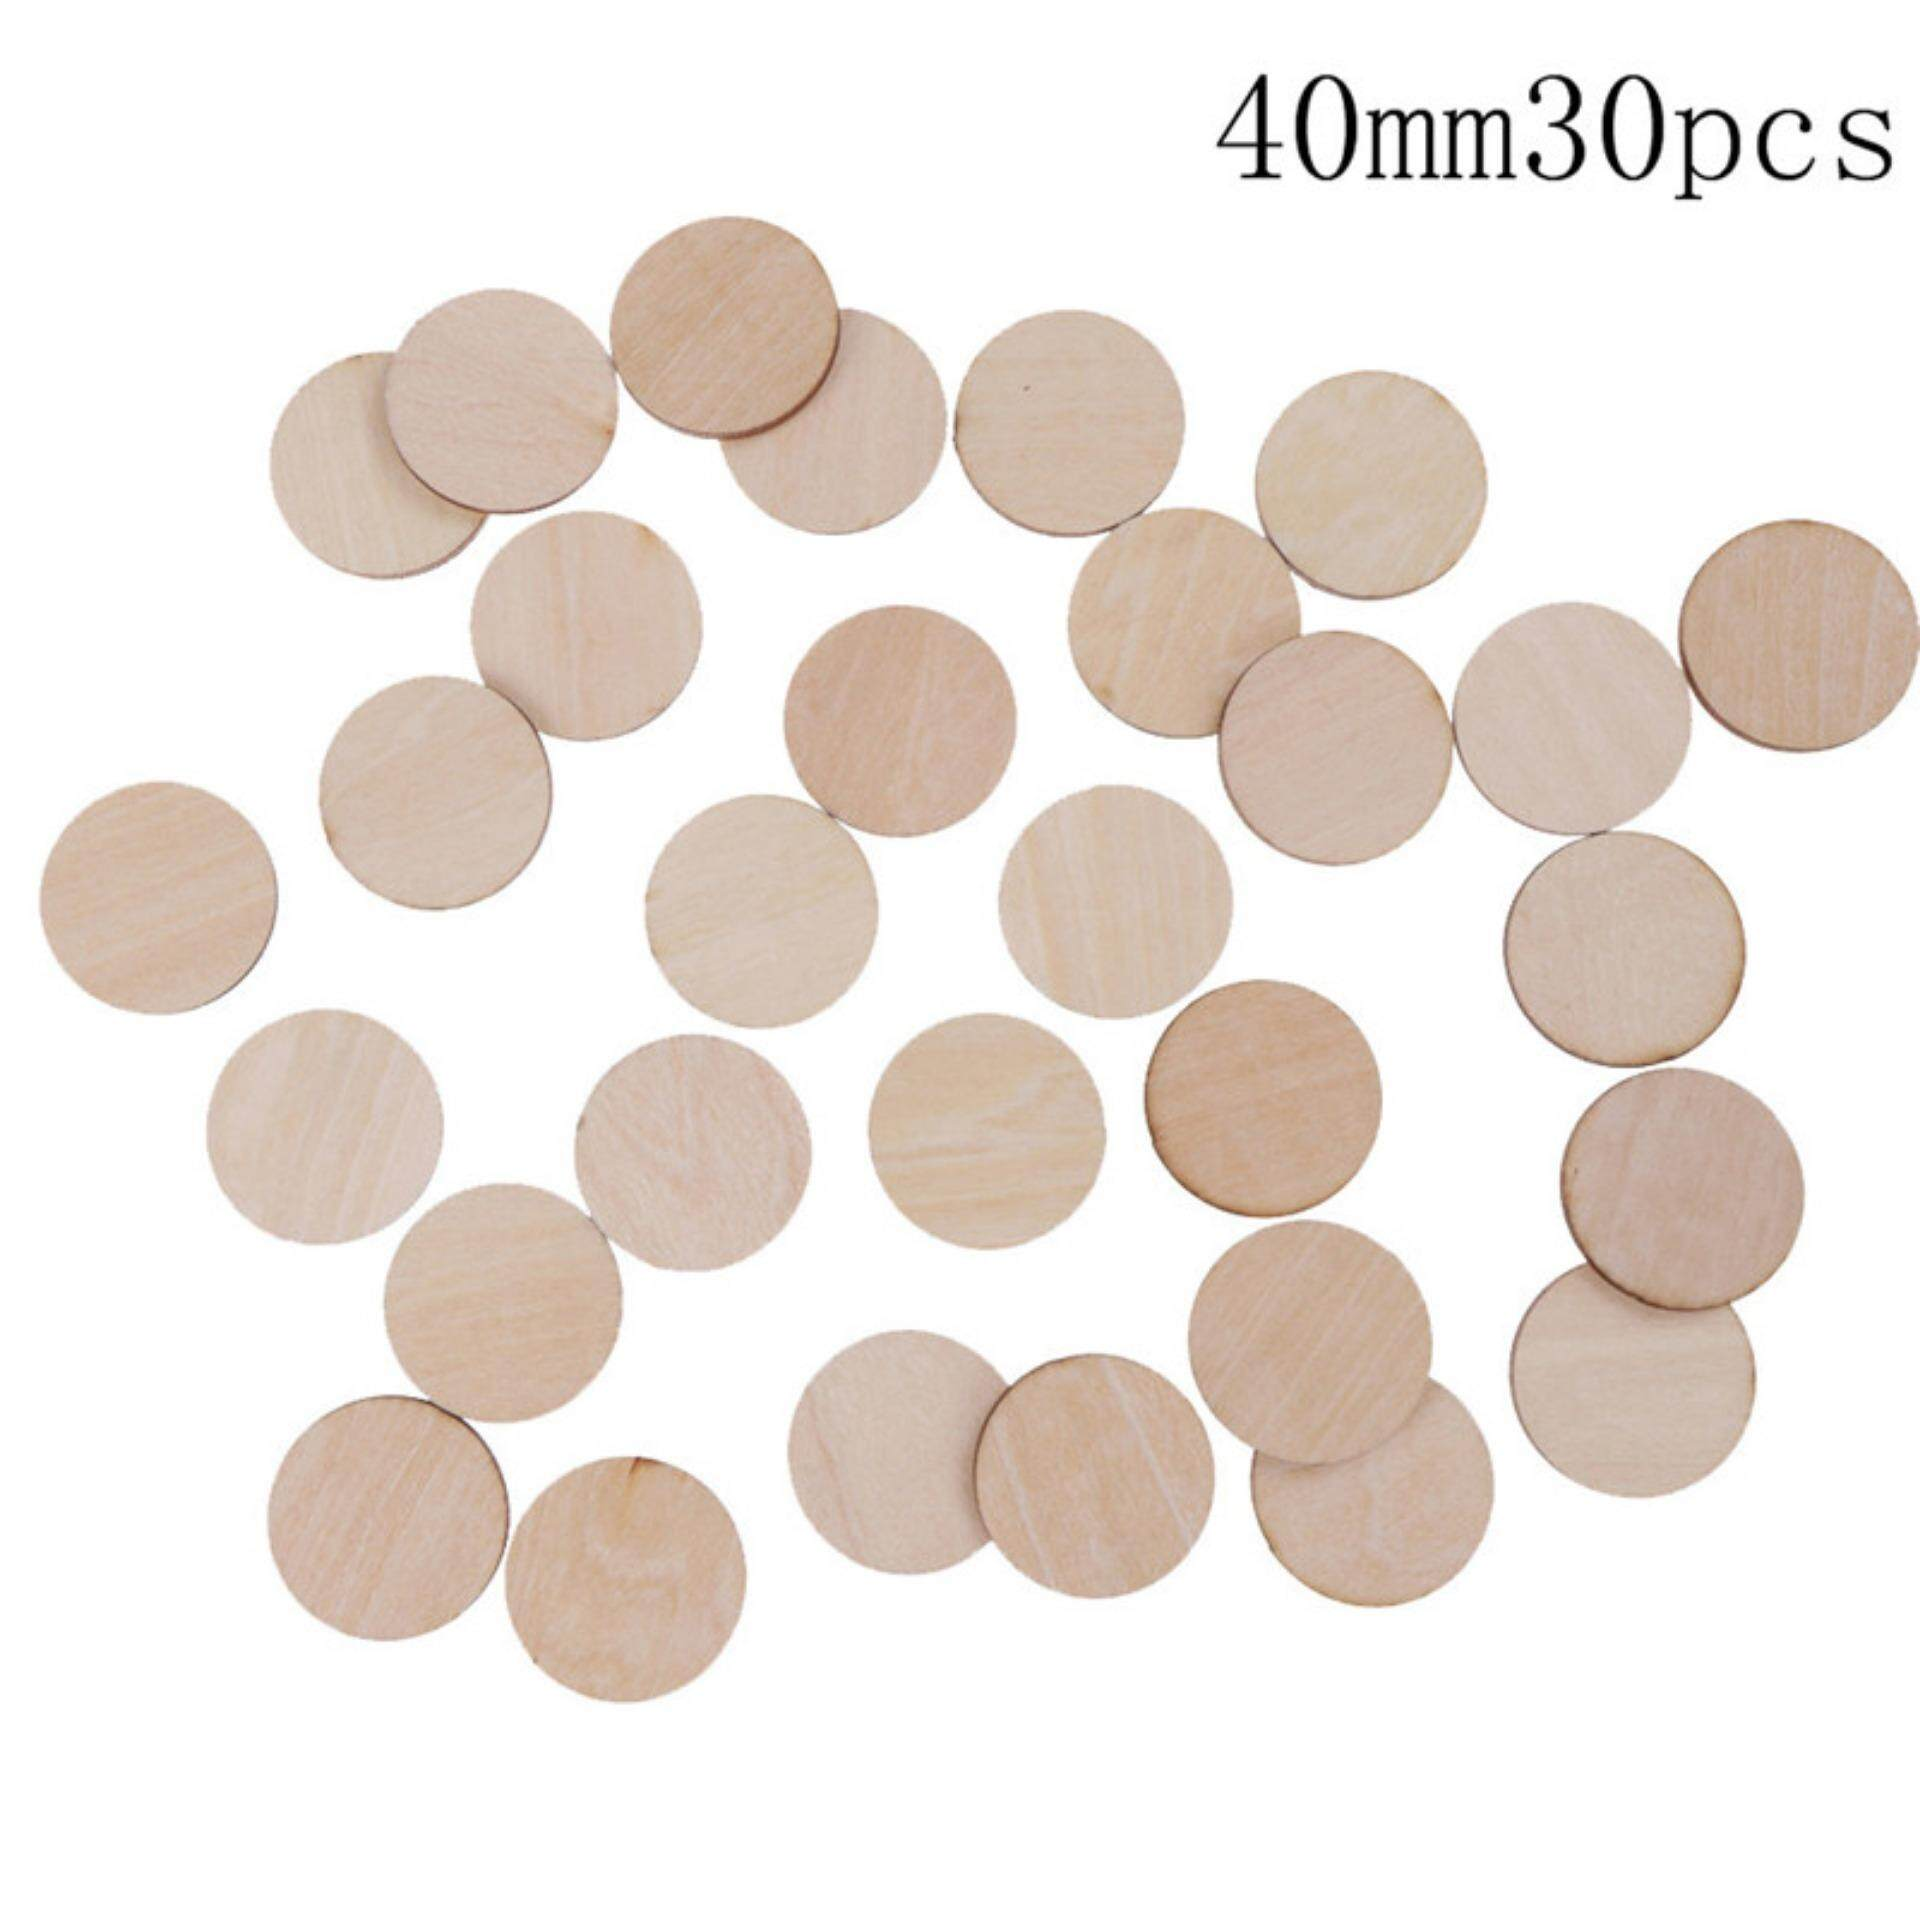 Unfinished Wooden Round Discs Embellishments DIY Rustic Art Crafts  4mm